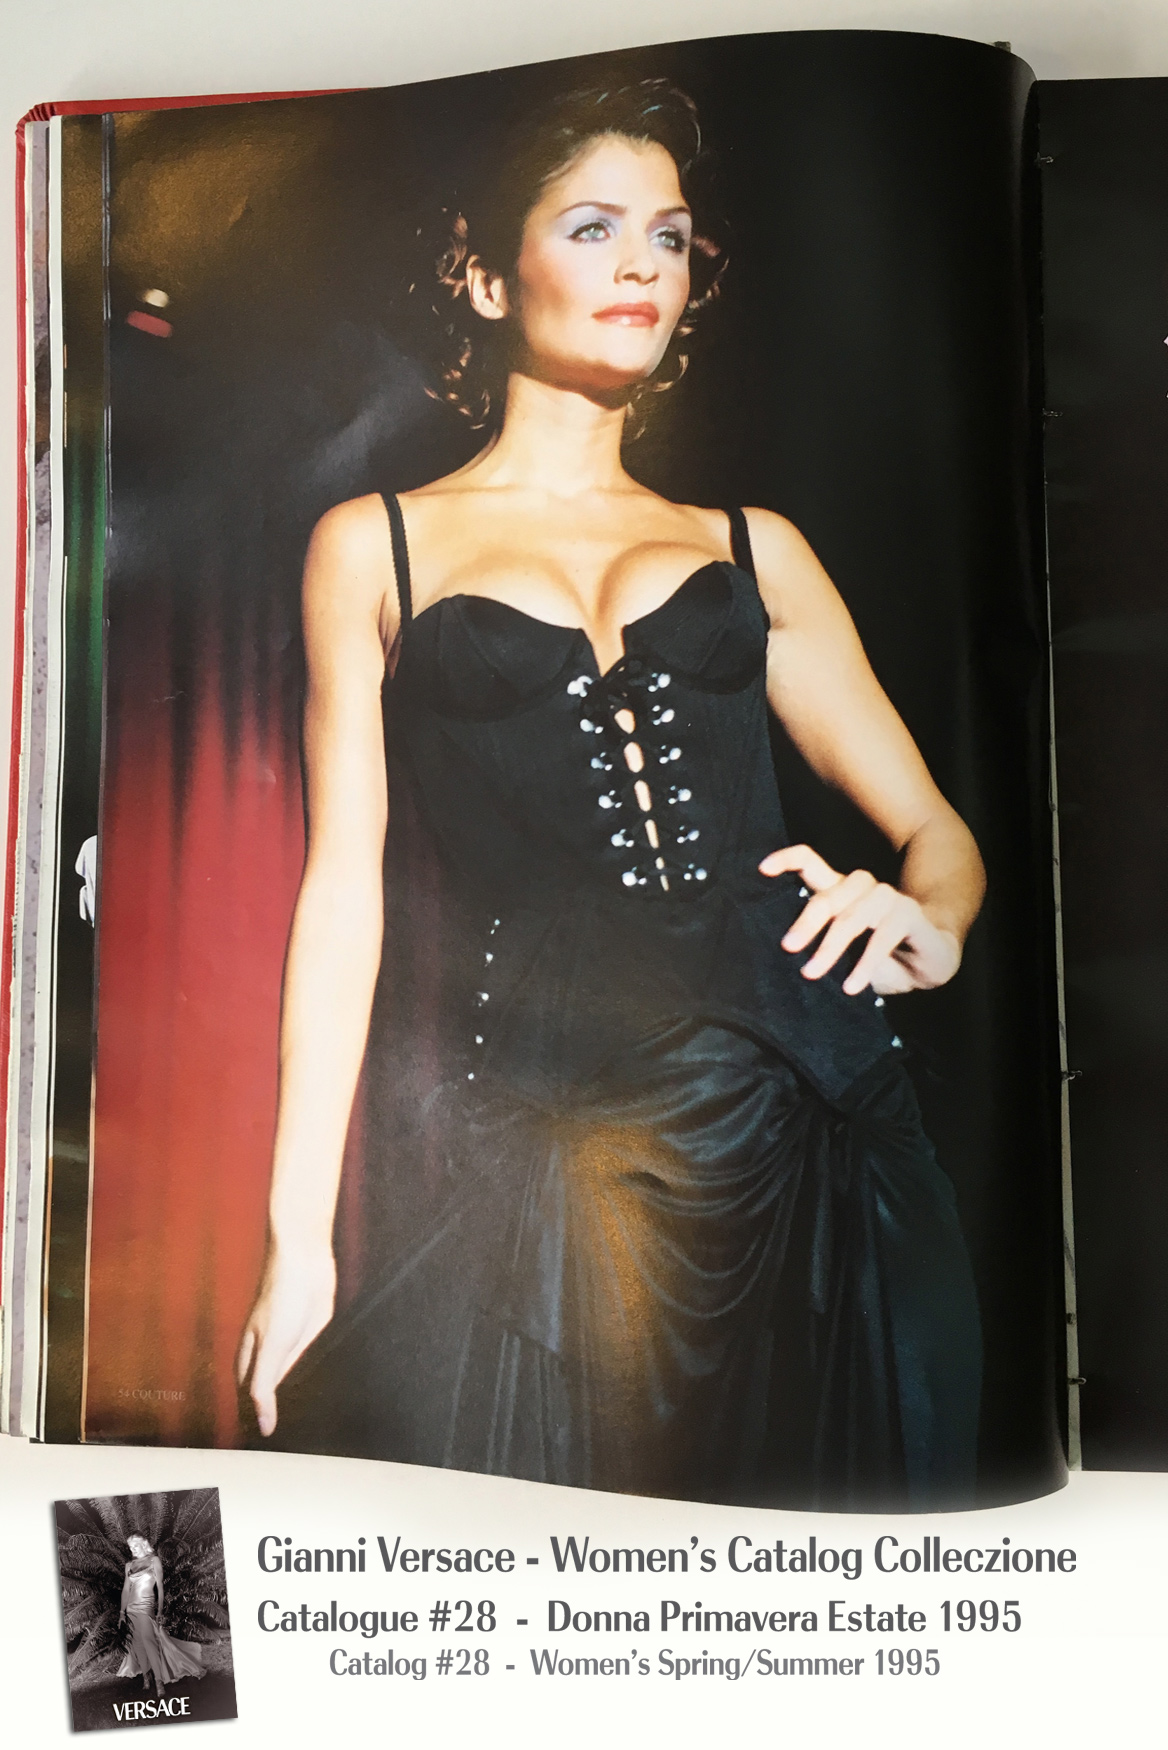 Helena Christensen Gianni Versace Donna Collezione Primavera Estate Woman's Spring Summer Thierry Perez Runway Models Catalog Fashion Supermodels #28, 1995